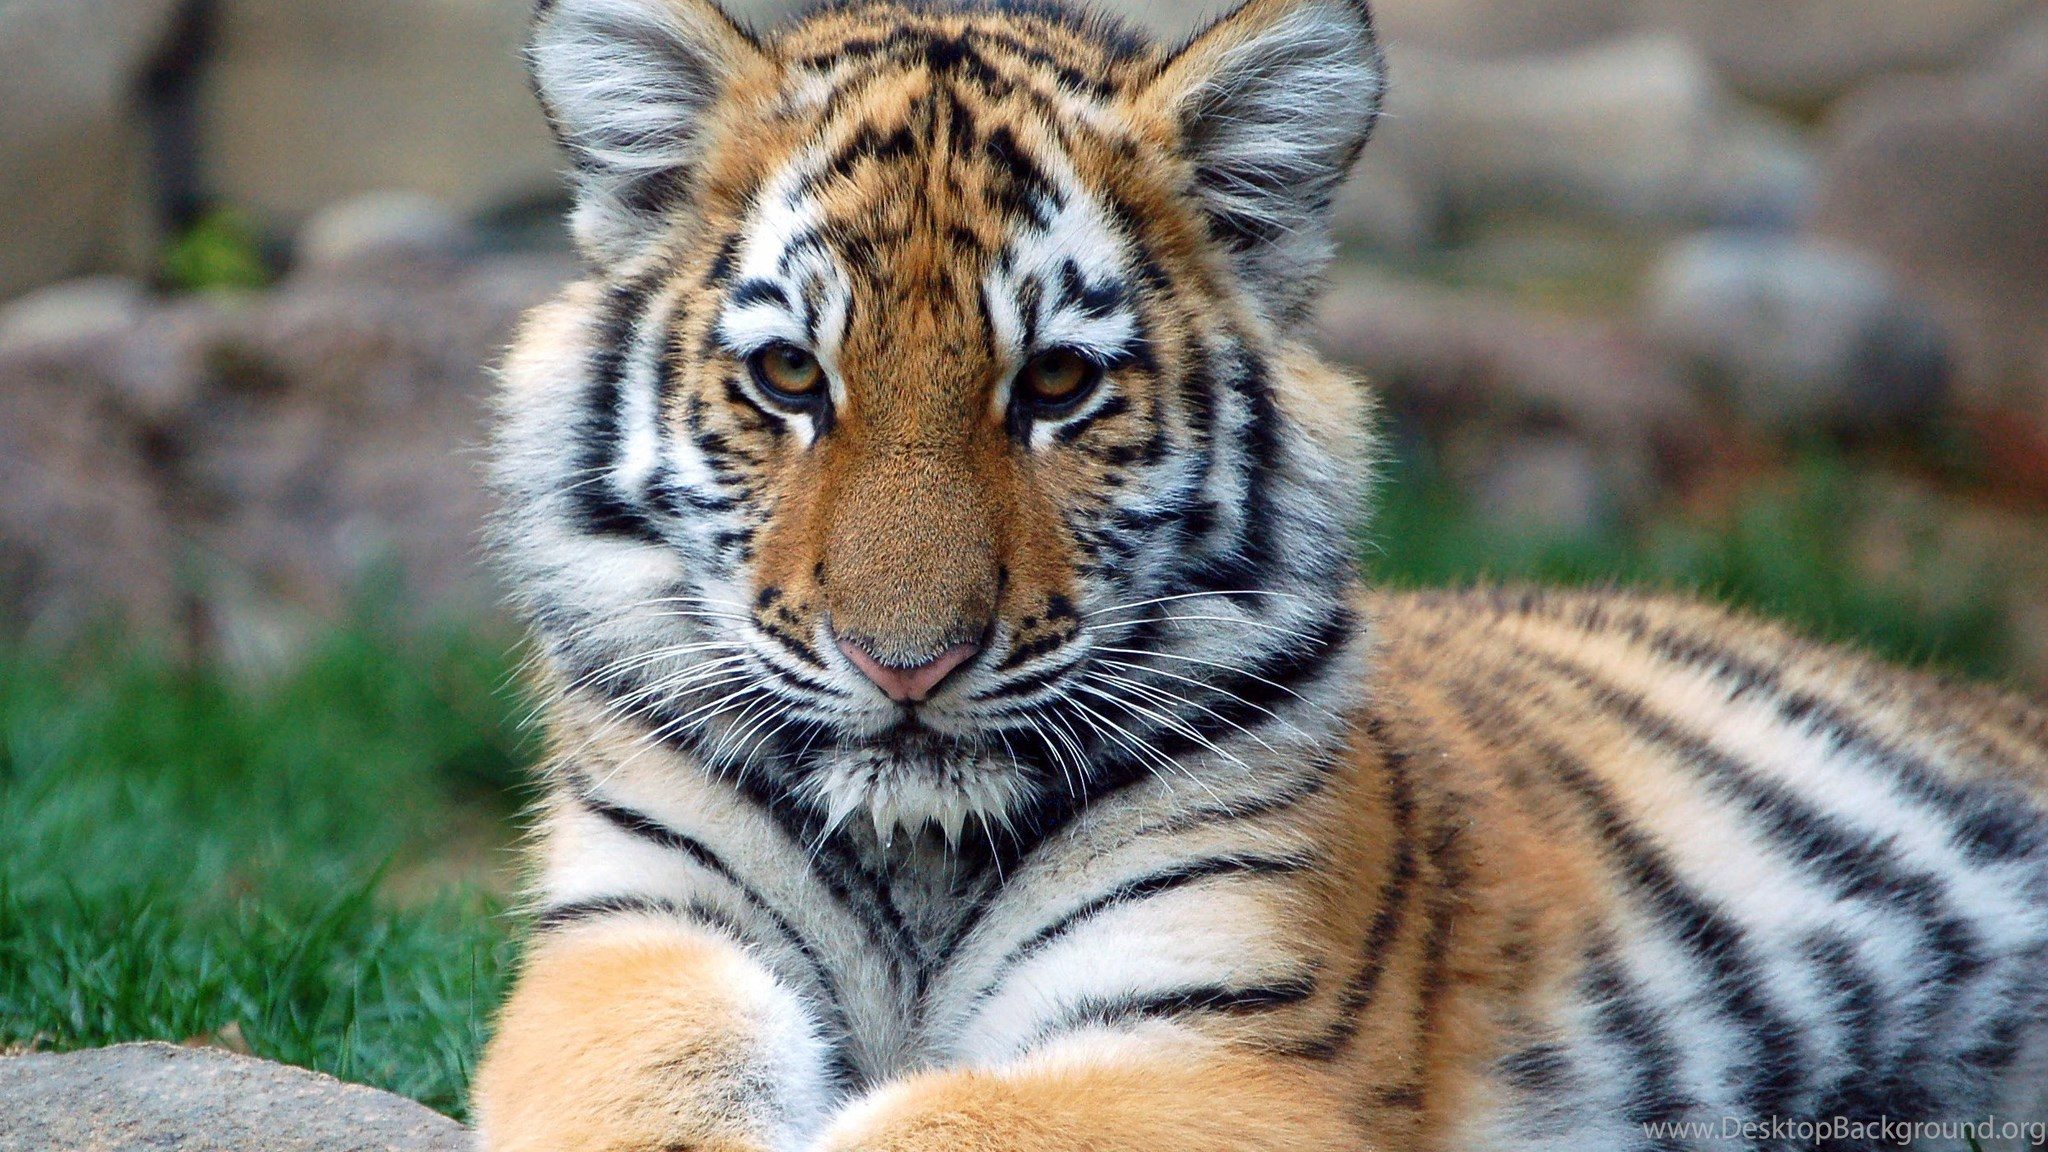 Bengal Tiger Wallpapers Cubs Desktop Background